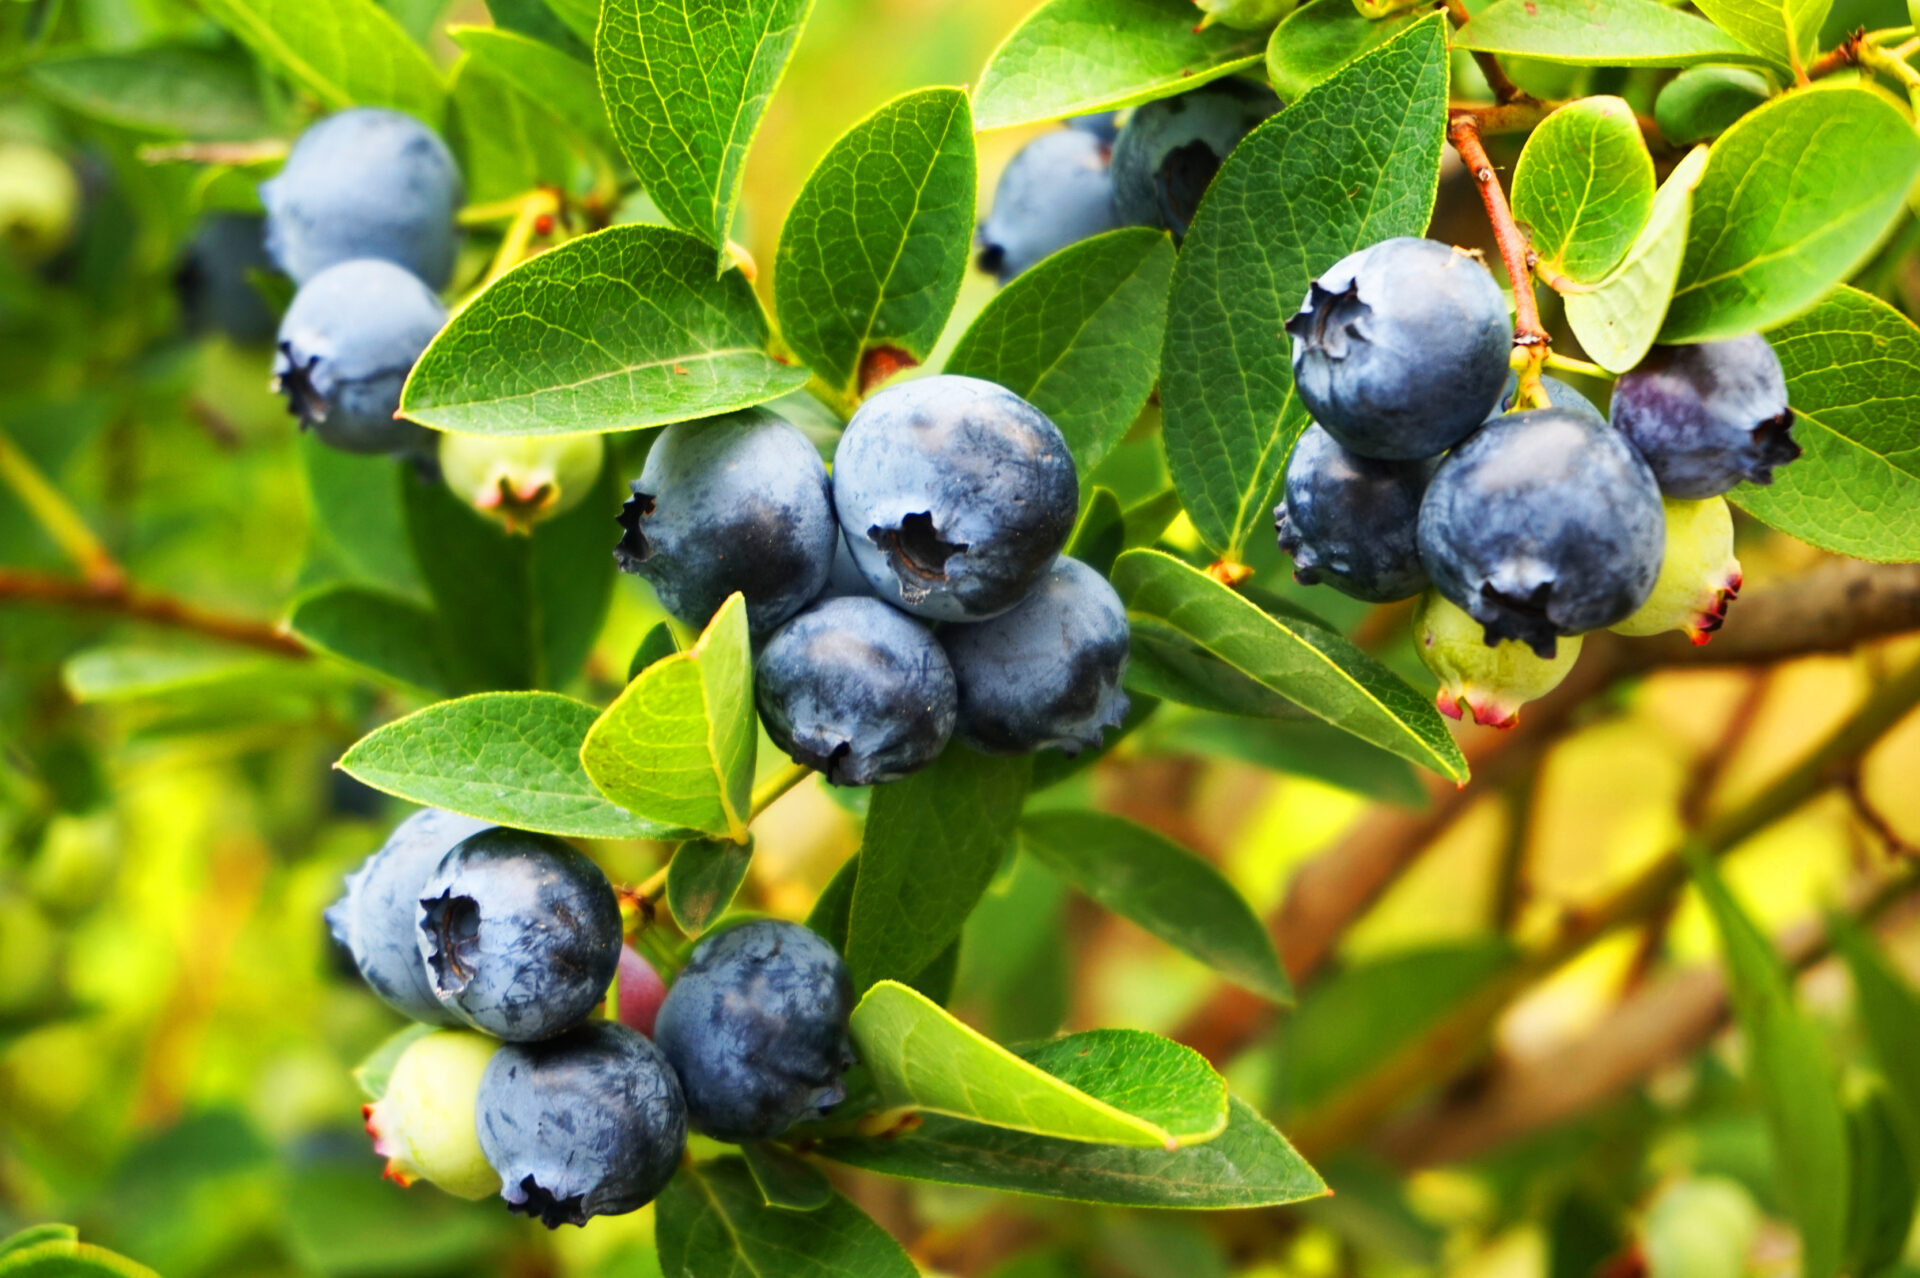 blueberries plant with fruits as nice natural background